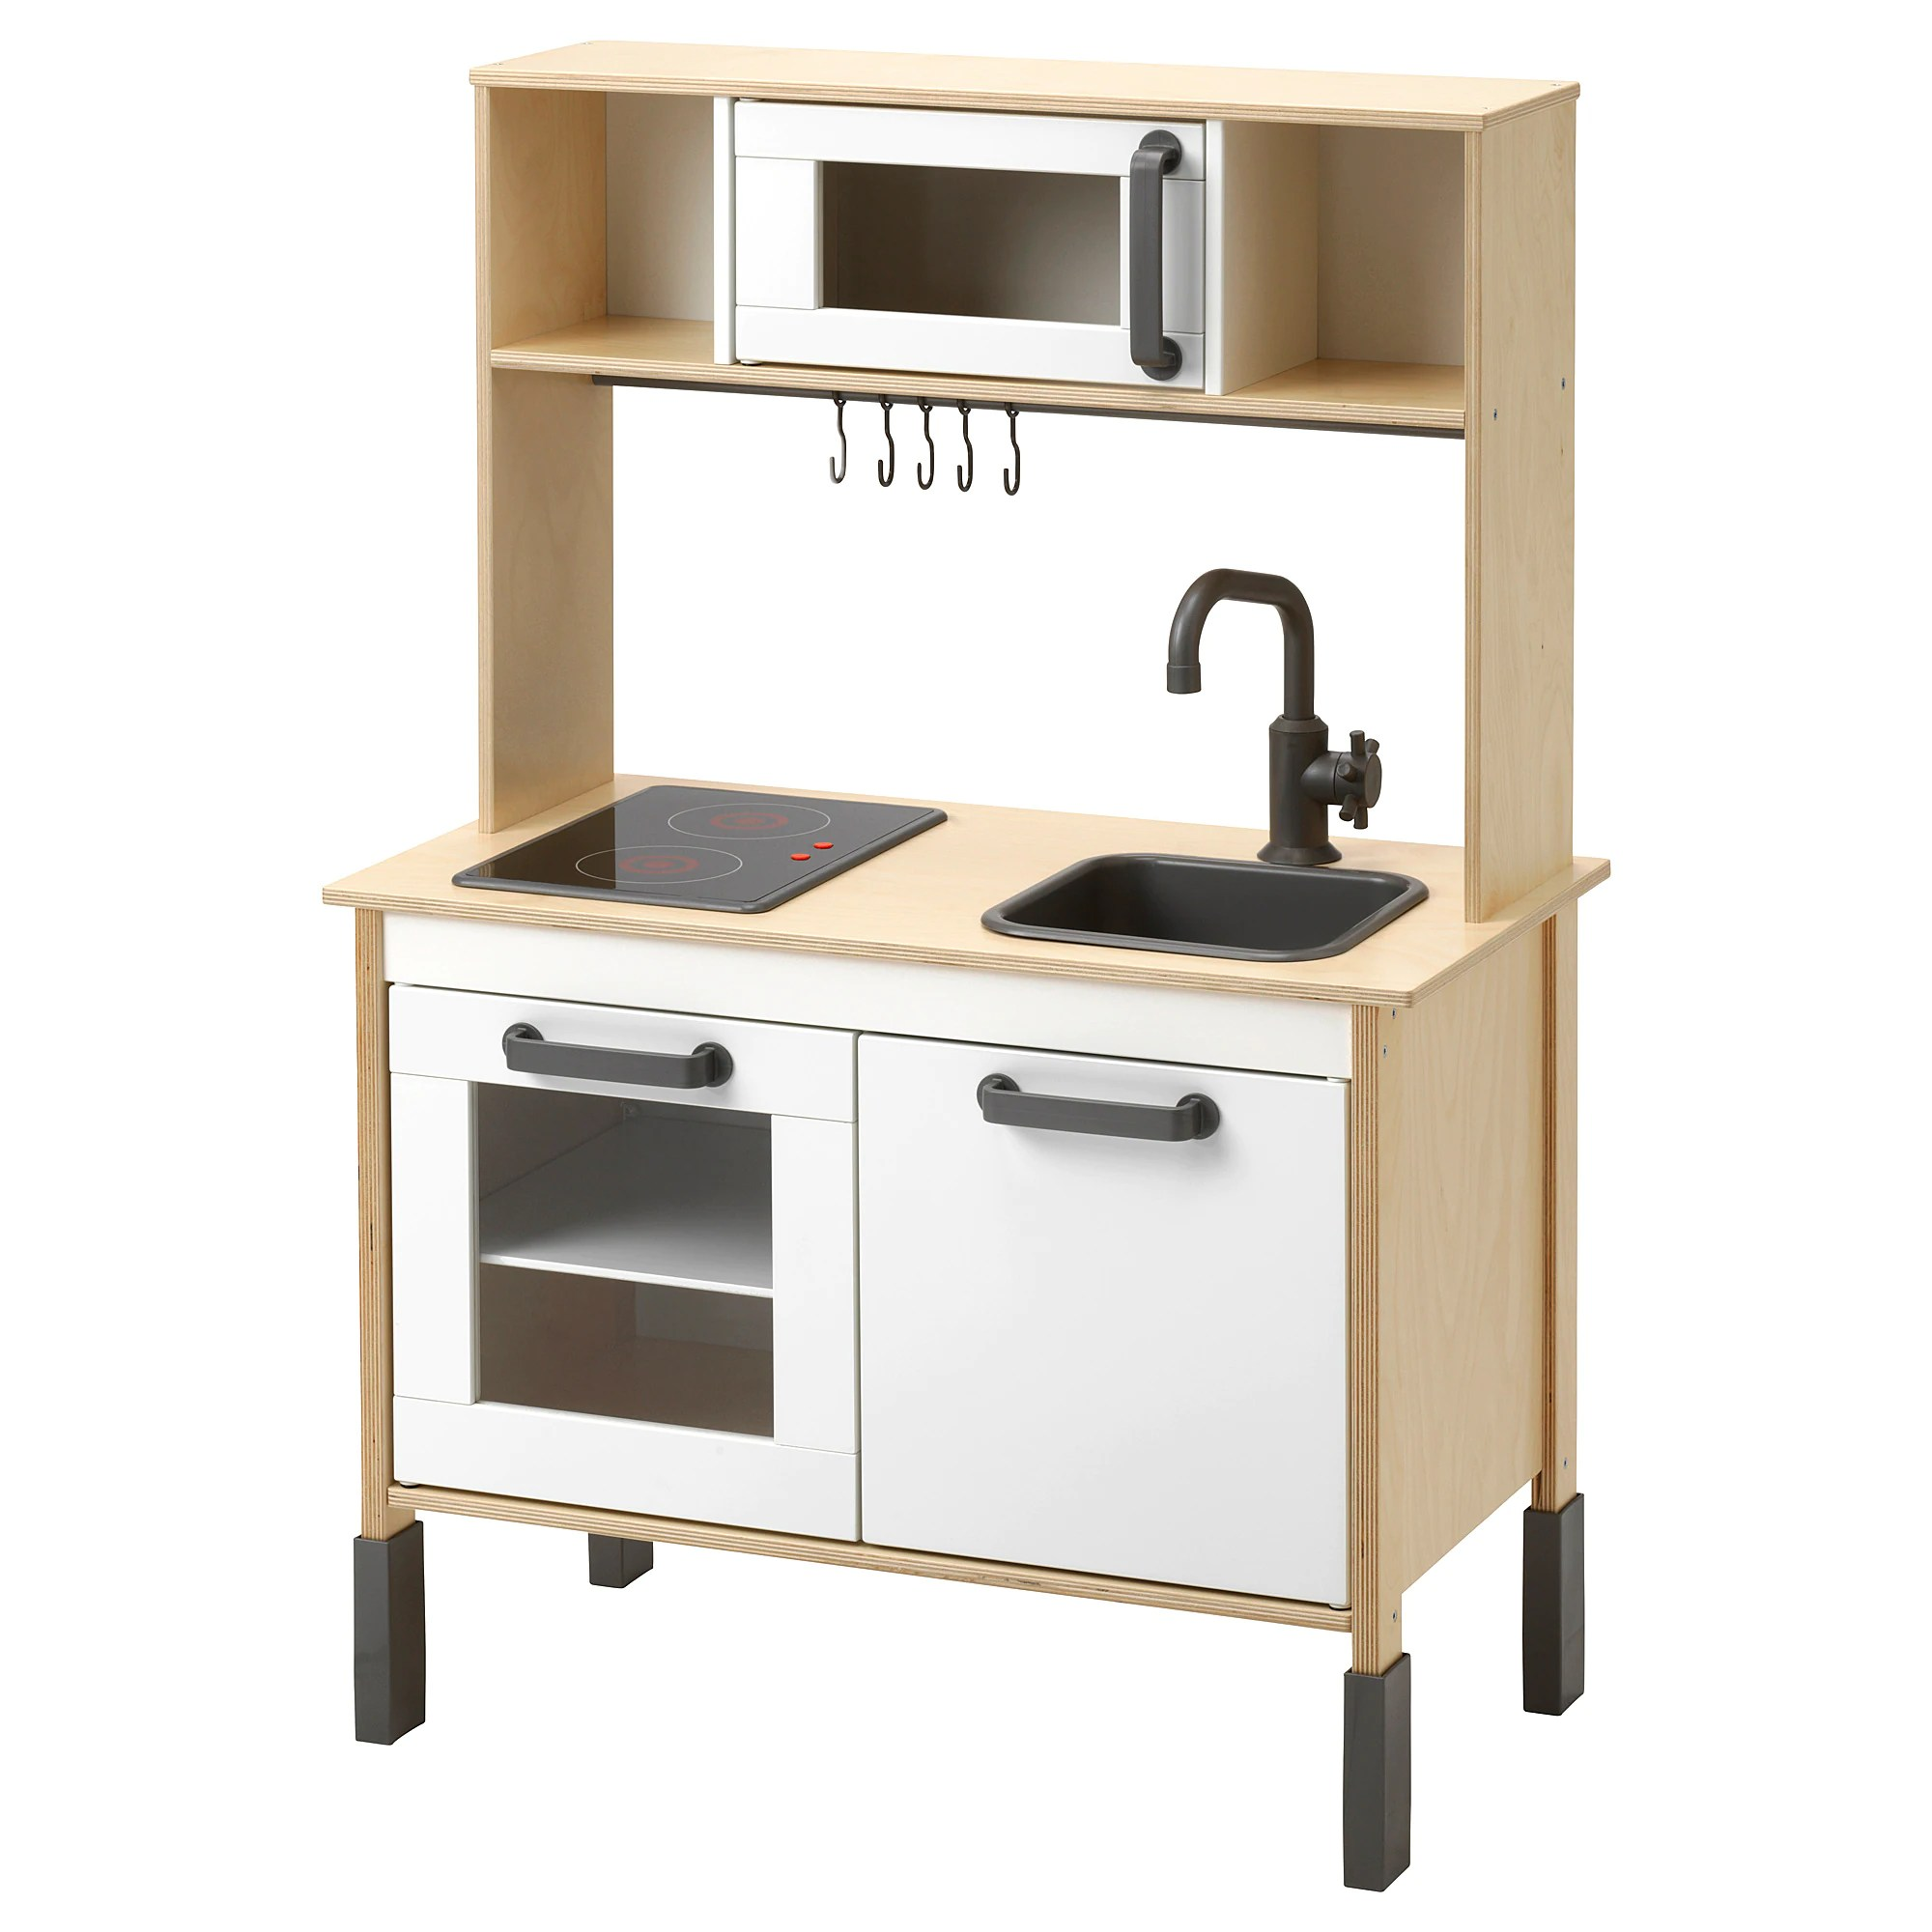 Cuisine Dinette Ikea Duktig Play Kitchen Birch